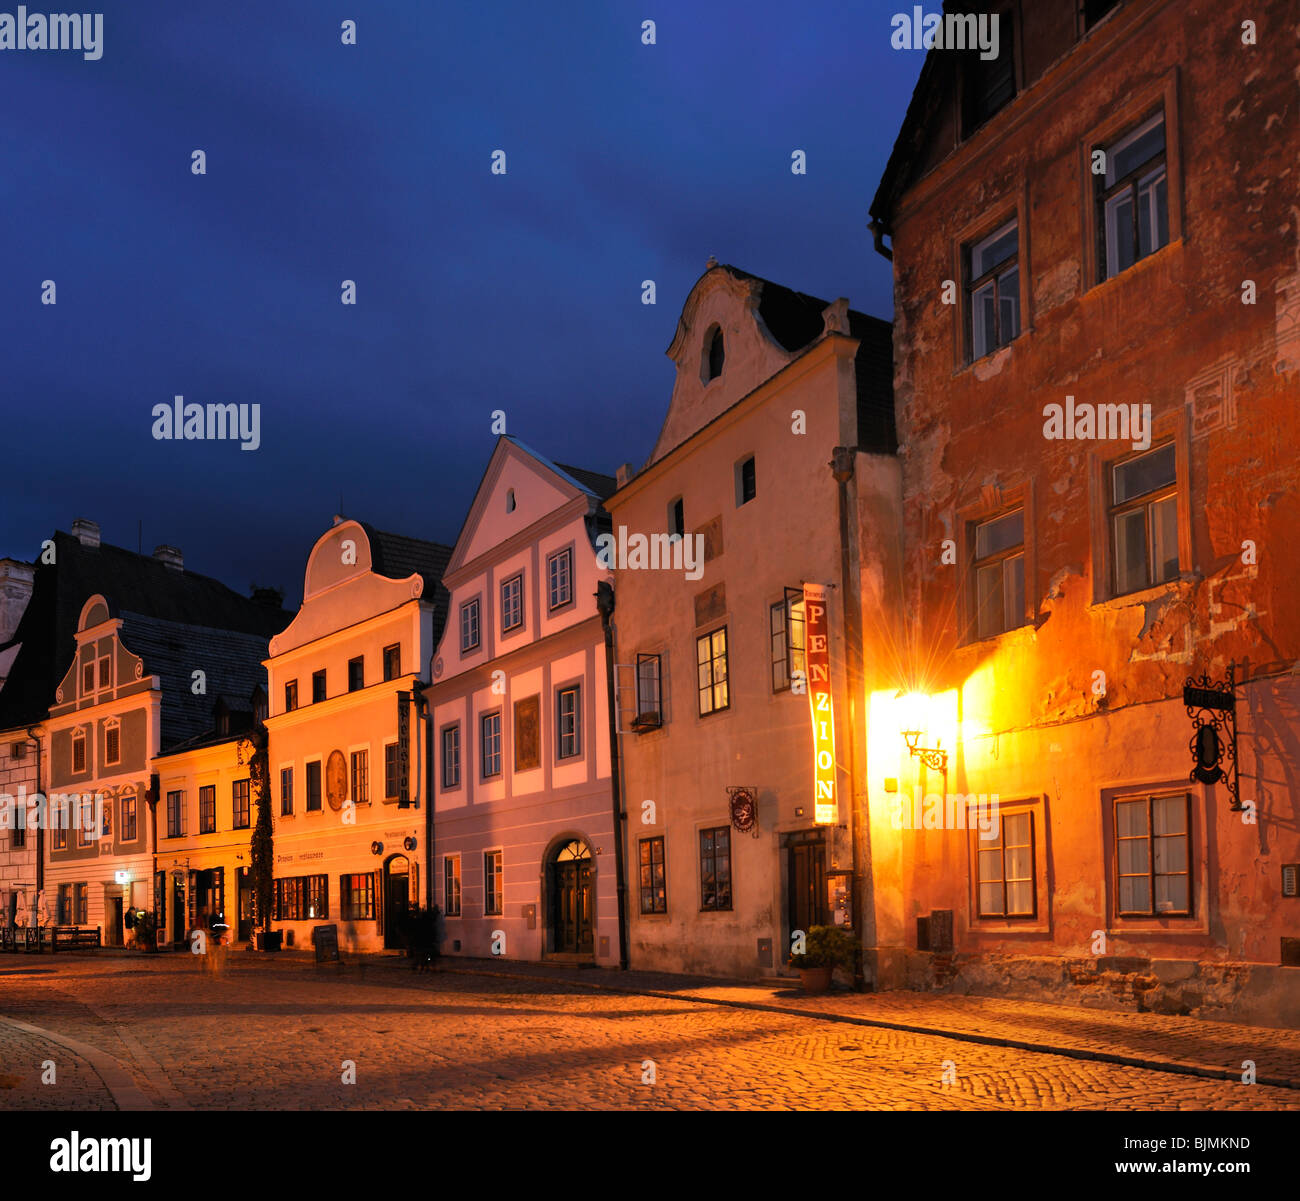 Historic old town in the evening, UNESCO World Heritage Site, Cesky Krumlov, Czech Republic, Europe Stock Photo